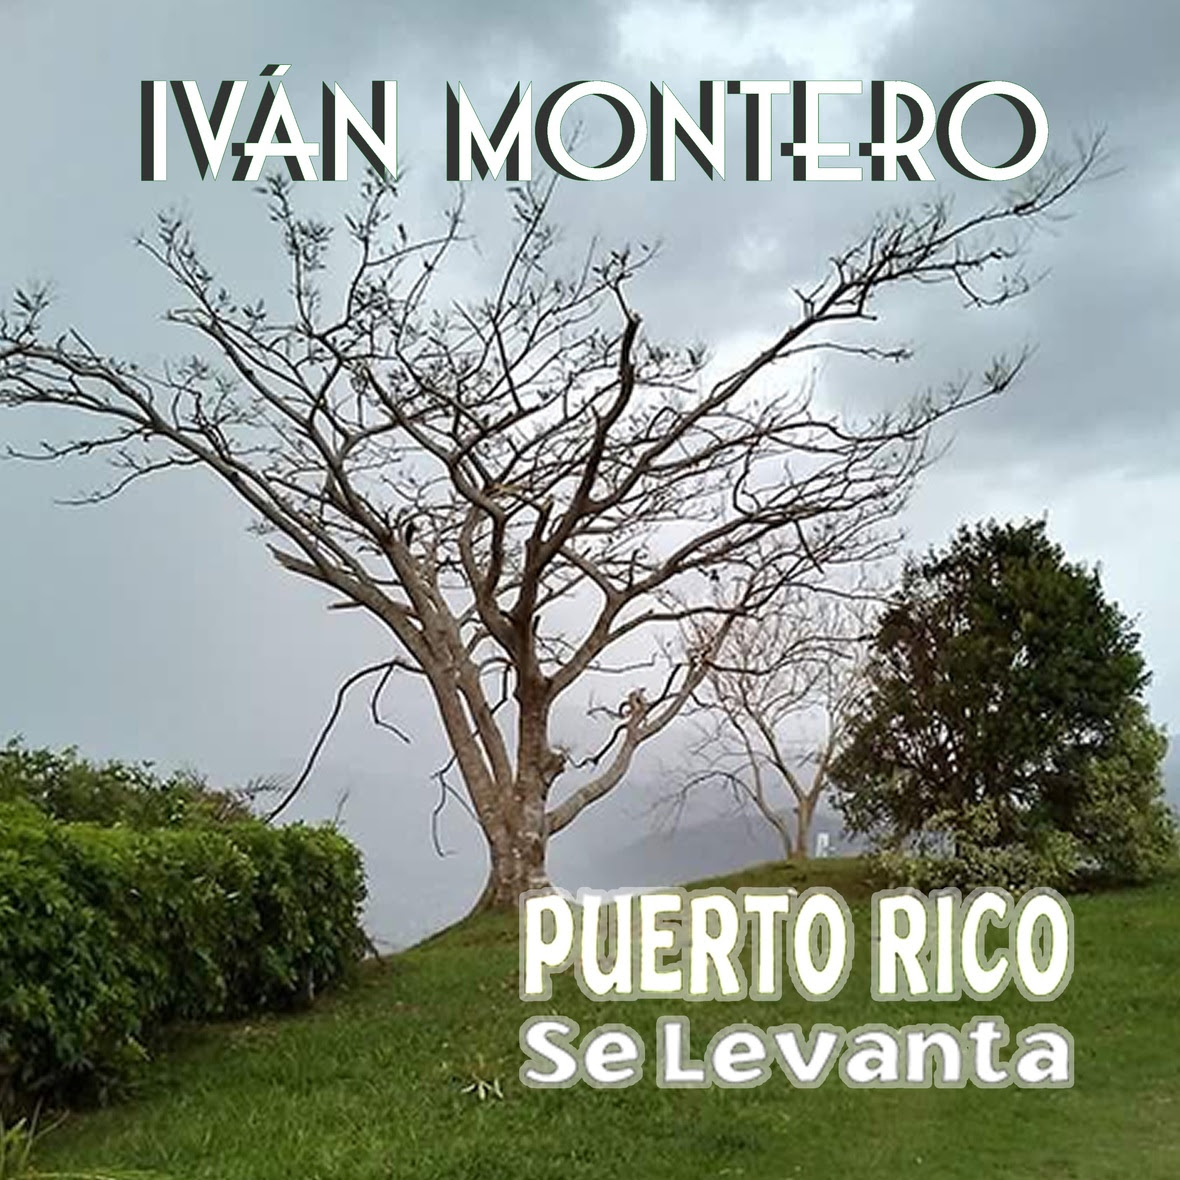 Puerto Rico Se Levanta - CD Cover JPEG